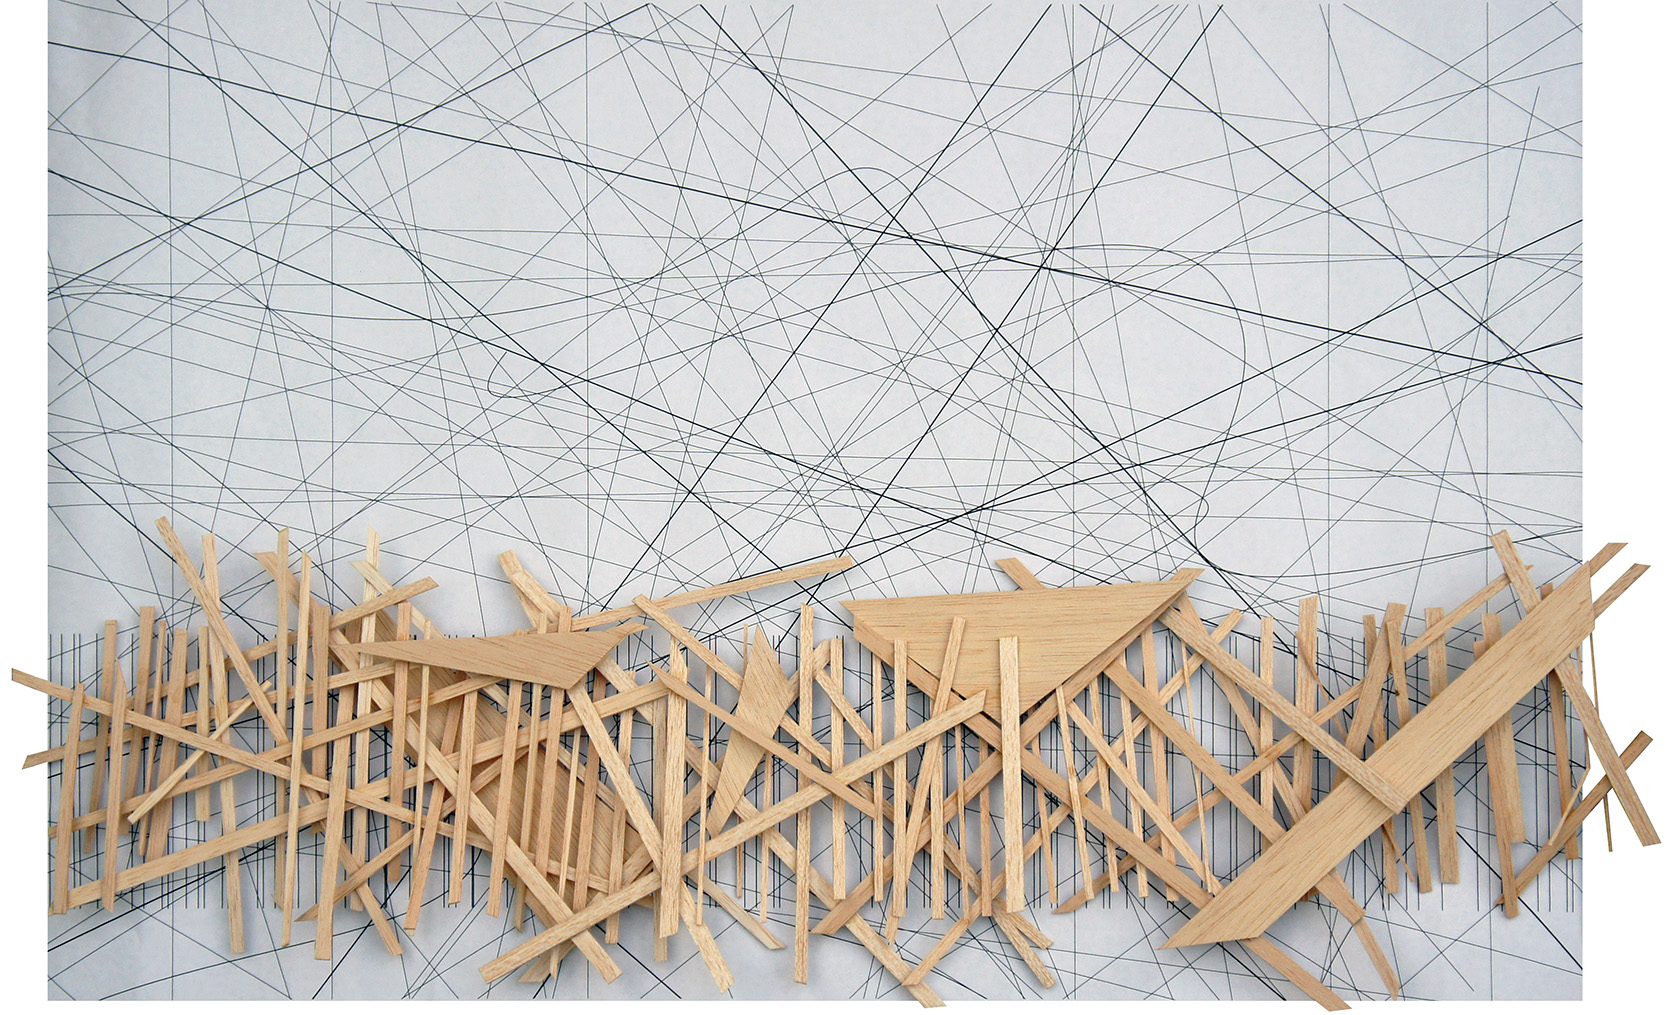 """FLAT MODEL / 34"""" x 8""""  Balsa wood model emphasizing the lines and space created in the drawing."""